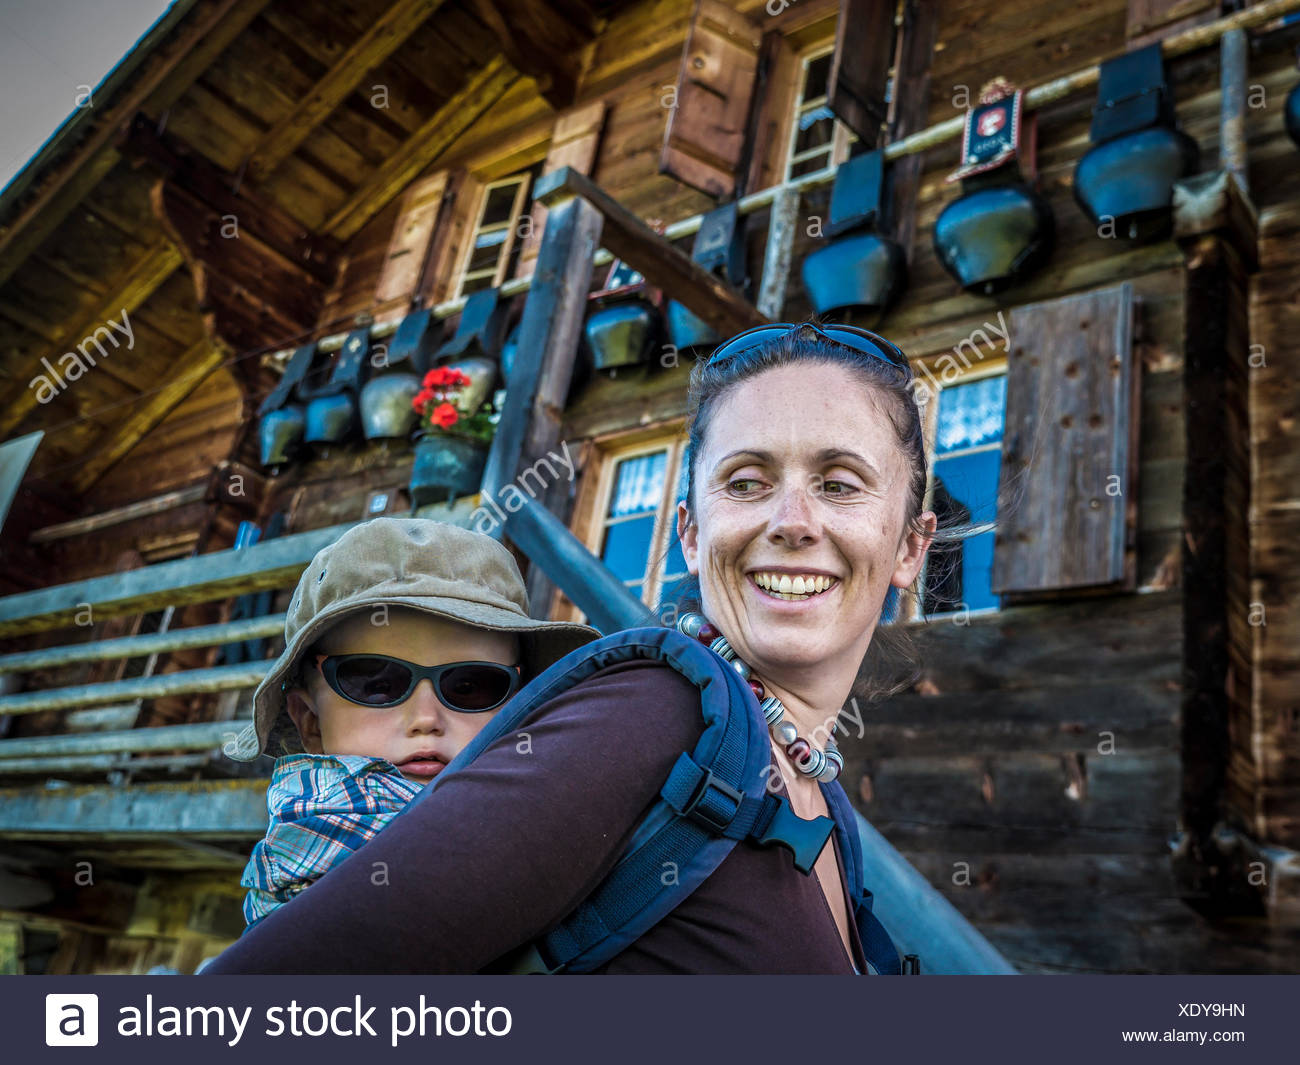 Woman giving child a piggyback ride, Bodme Alp, Gstaad, Canton of Bern, Switzerland - Stock Image